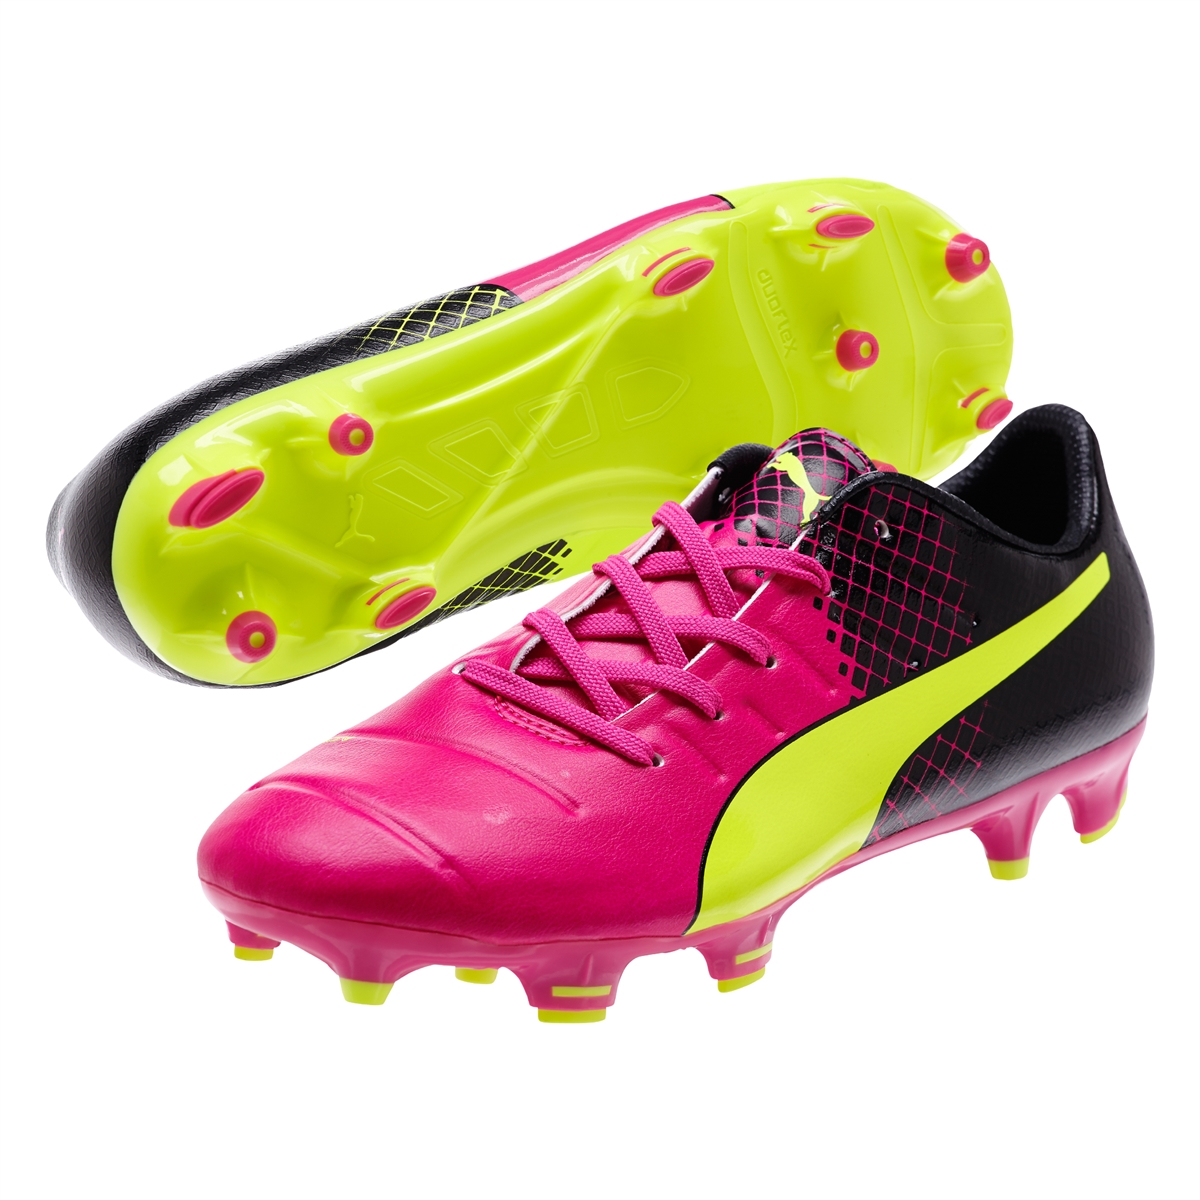 Puma evoPOWER 1.3 Tricks Youth FG Soccer Cleats (Pink Glo/Safety  Yellow/Black